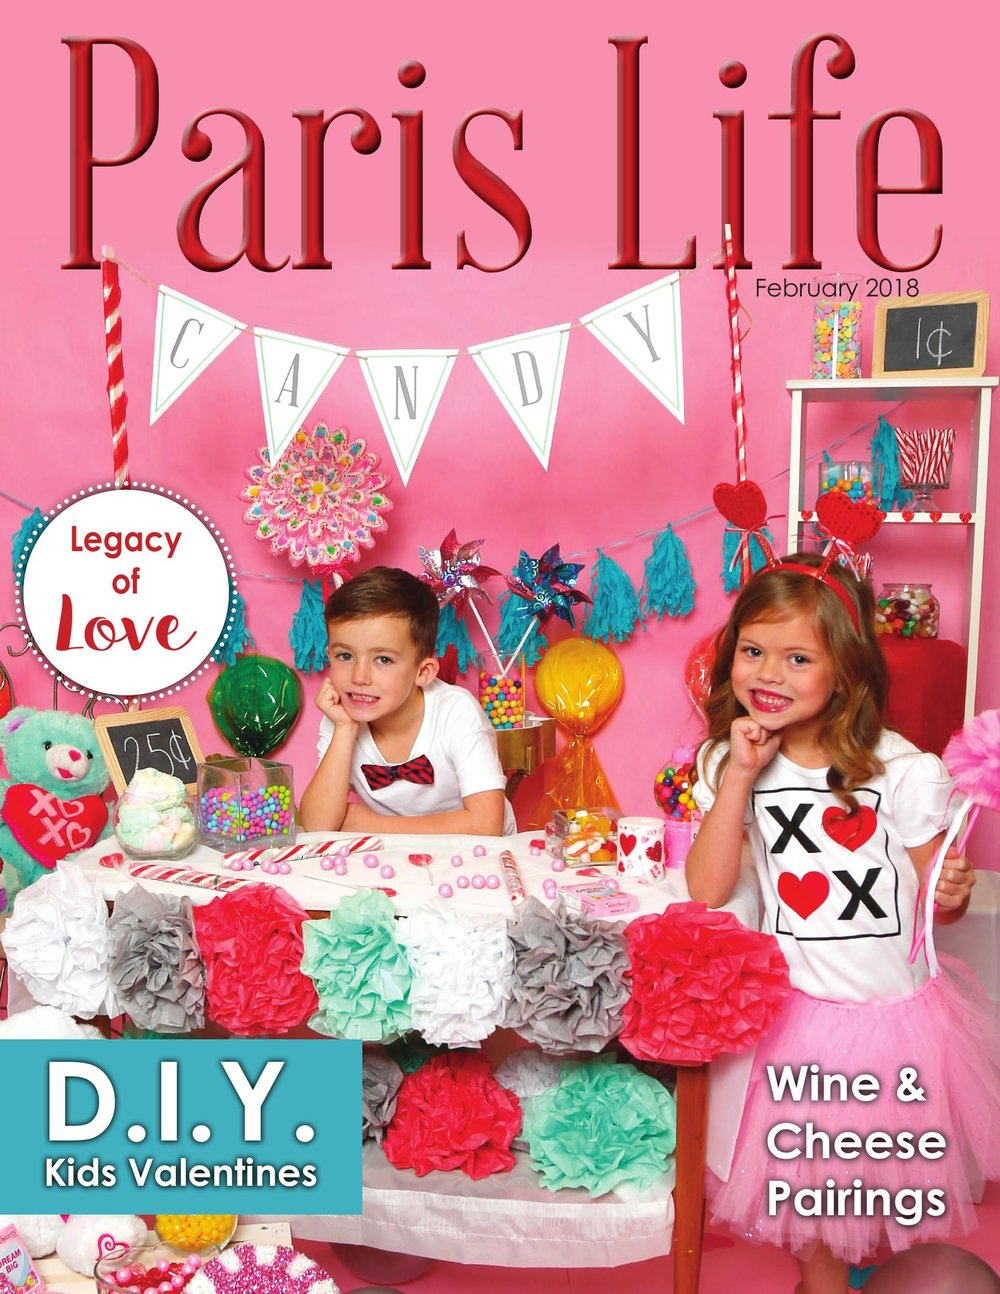 paris-life-cover.jpg